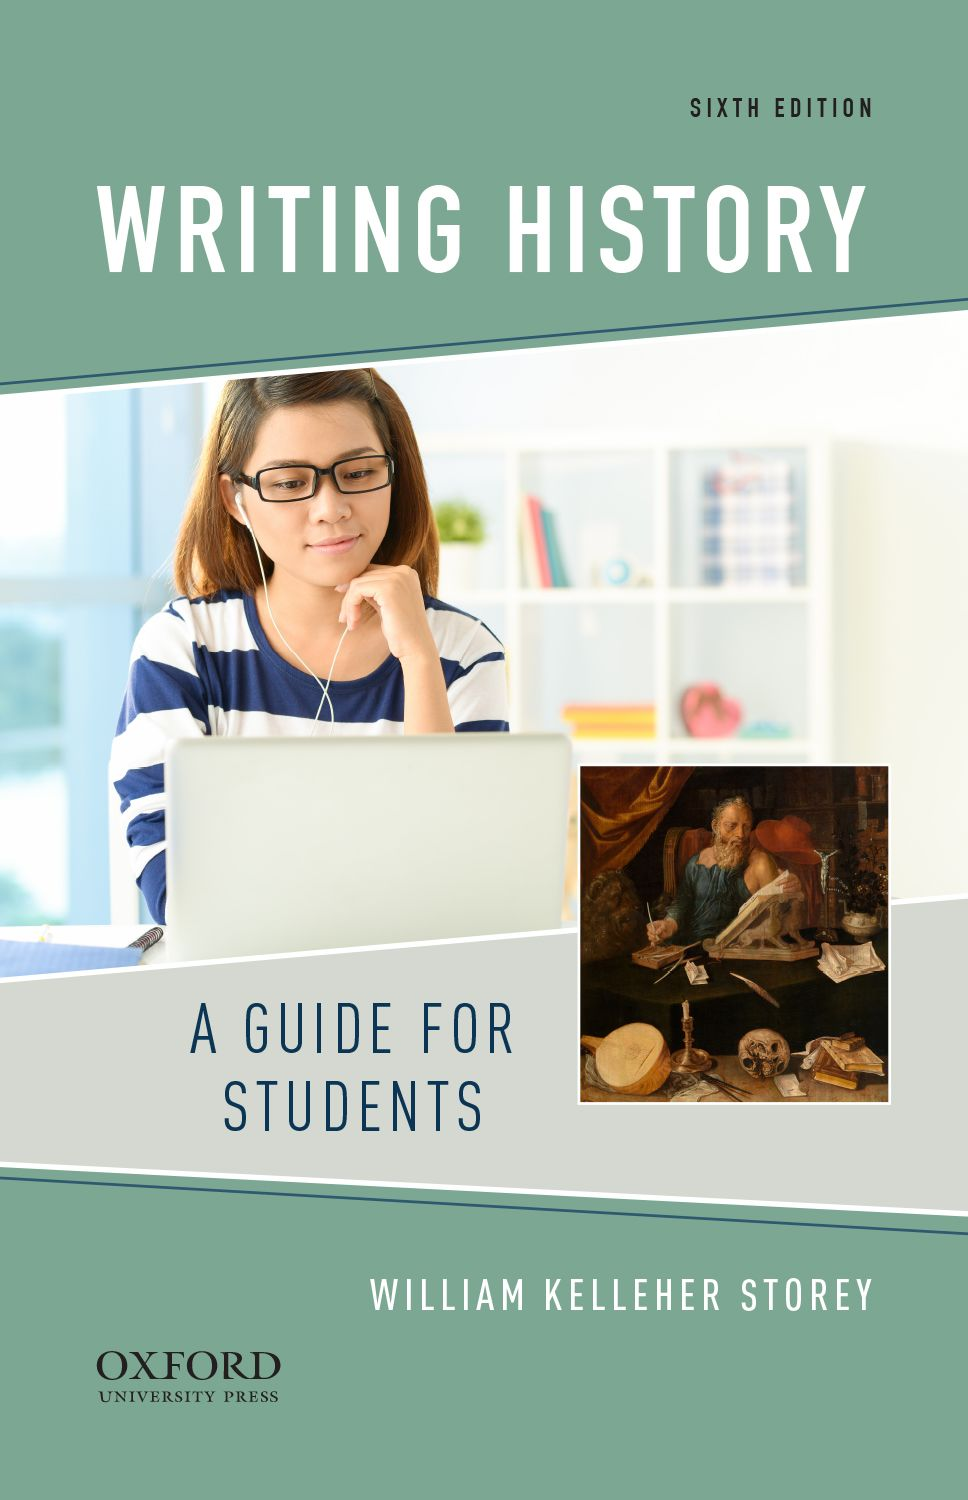 Writing History: A Guide for Students 6e Instructor Resources